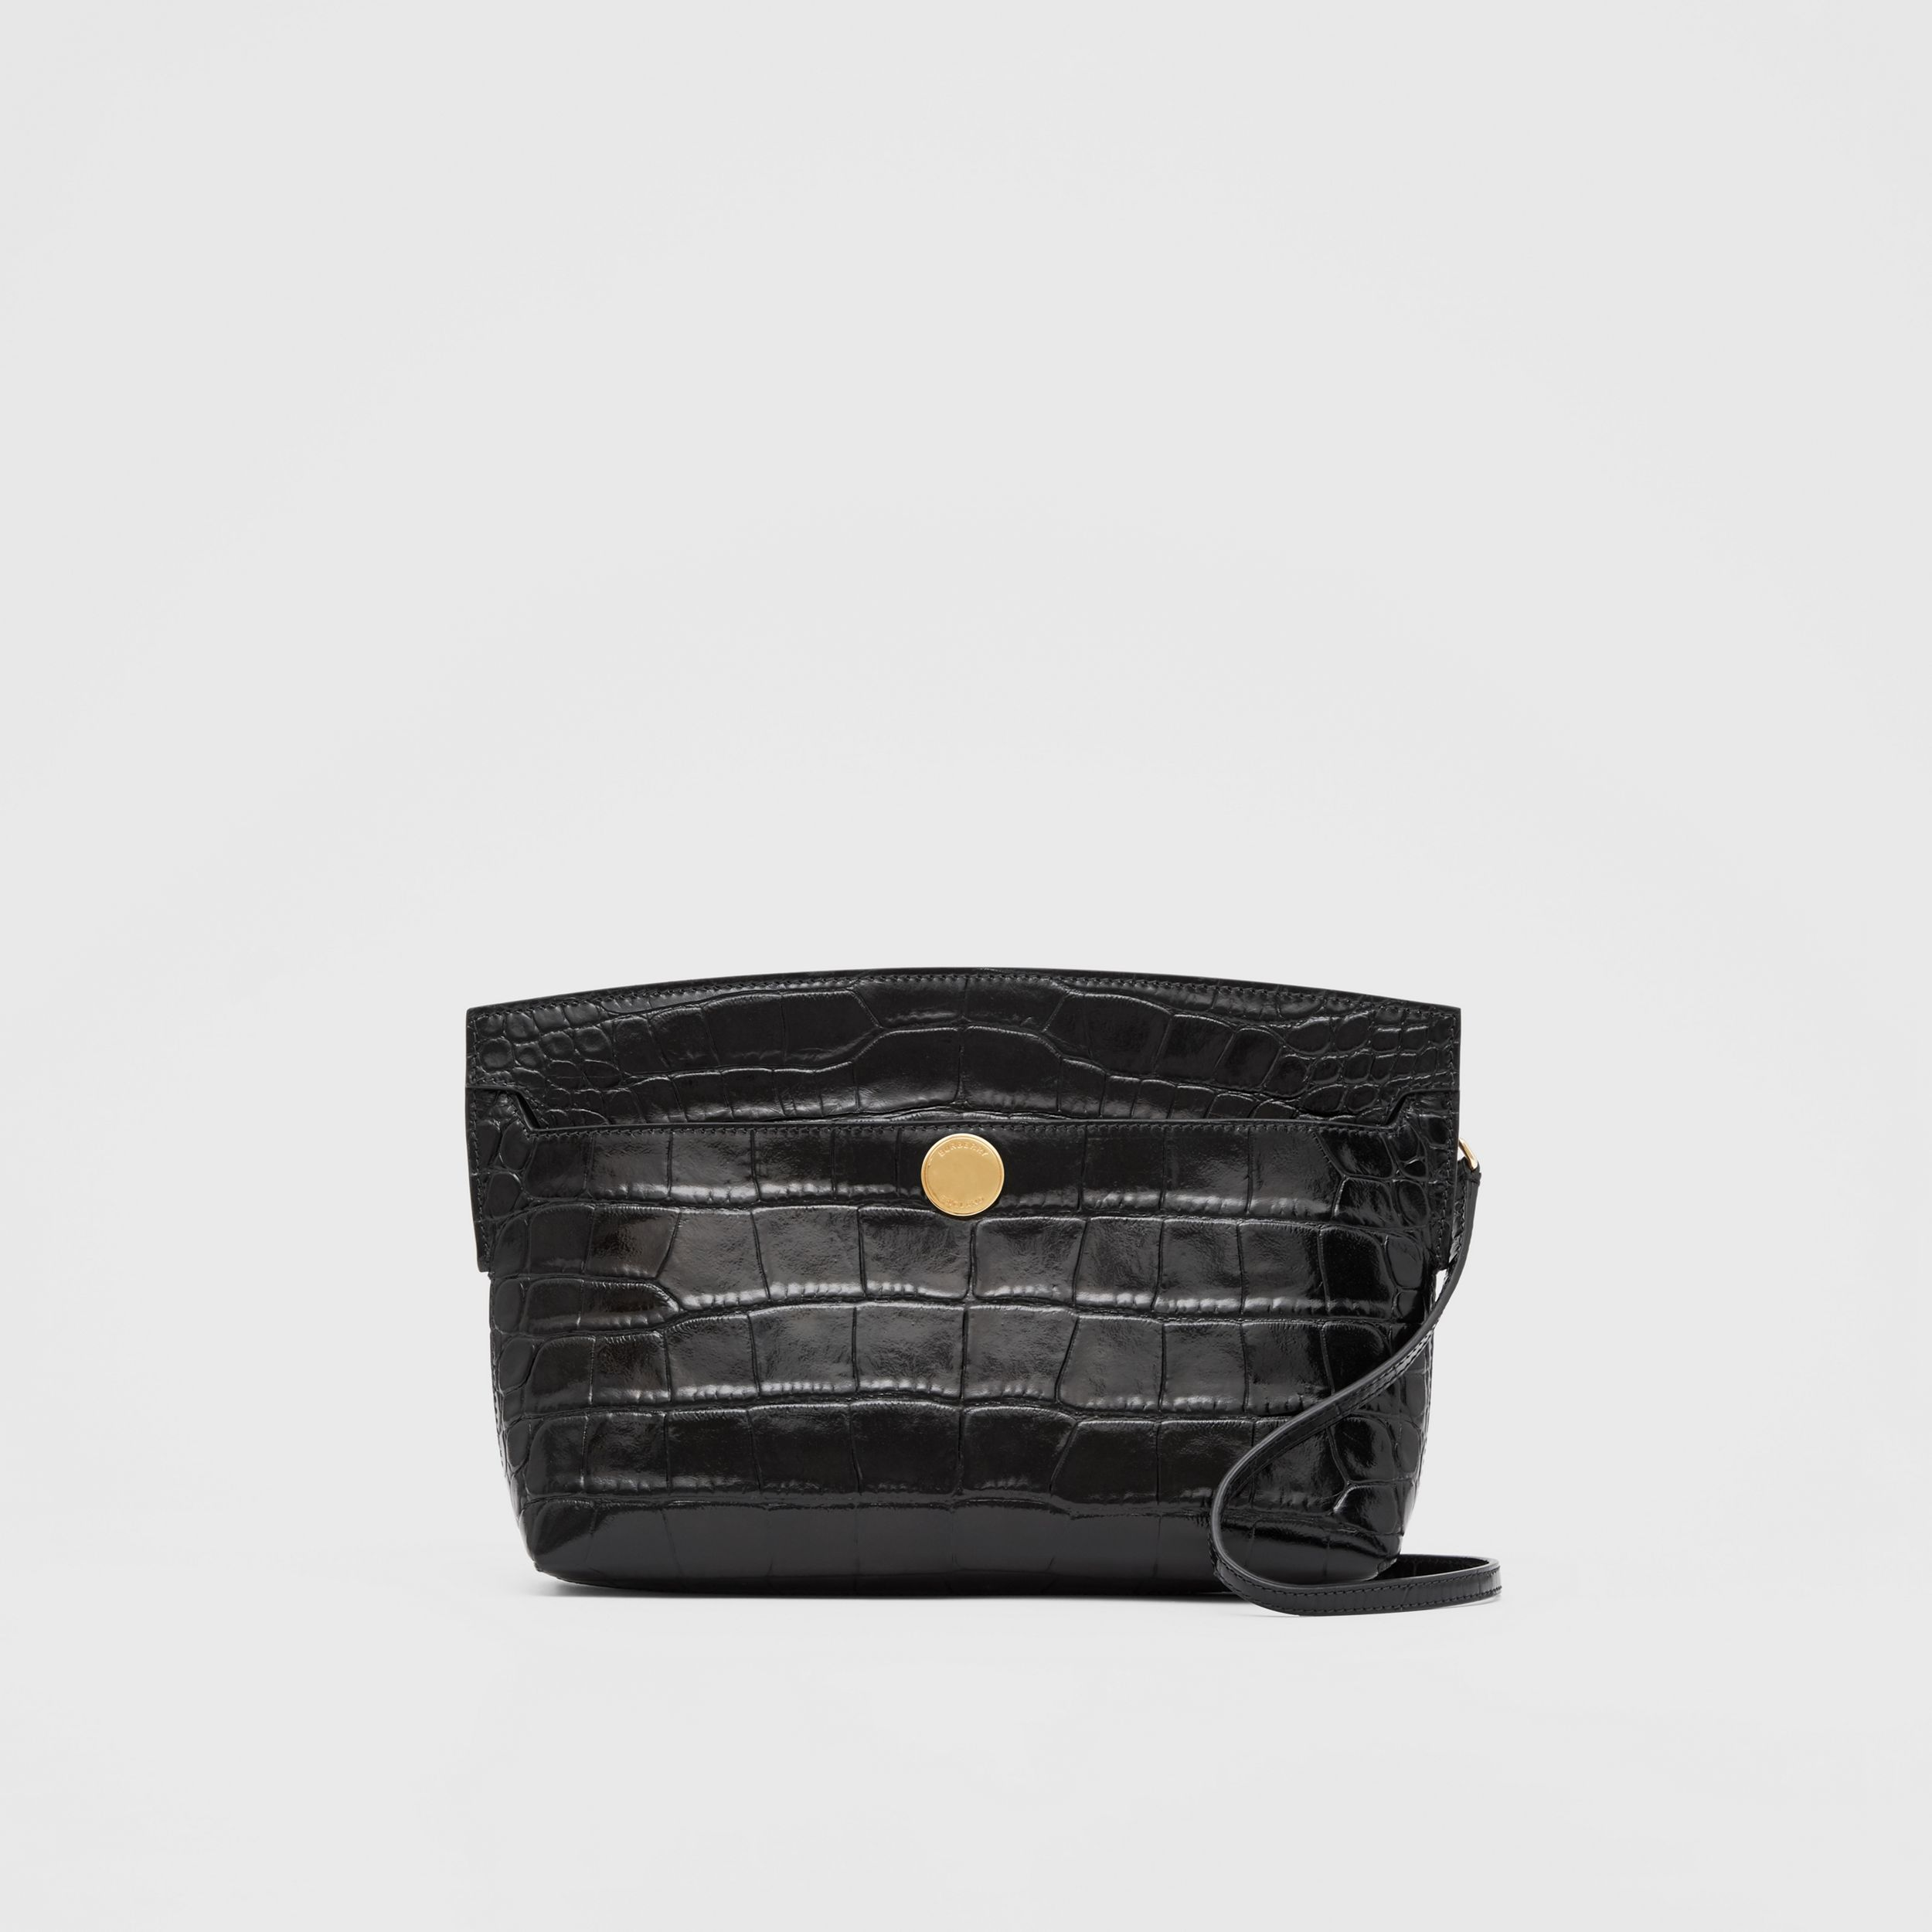 Embossed Leather Society Clutch in Black - Women | Burberry - 1